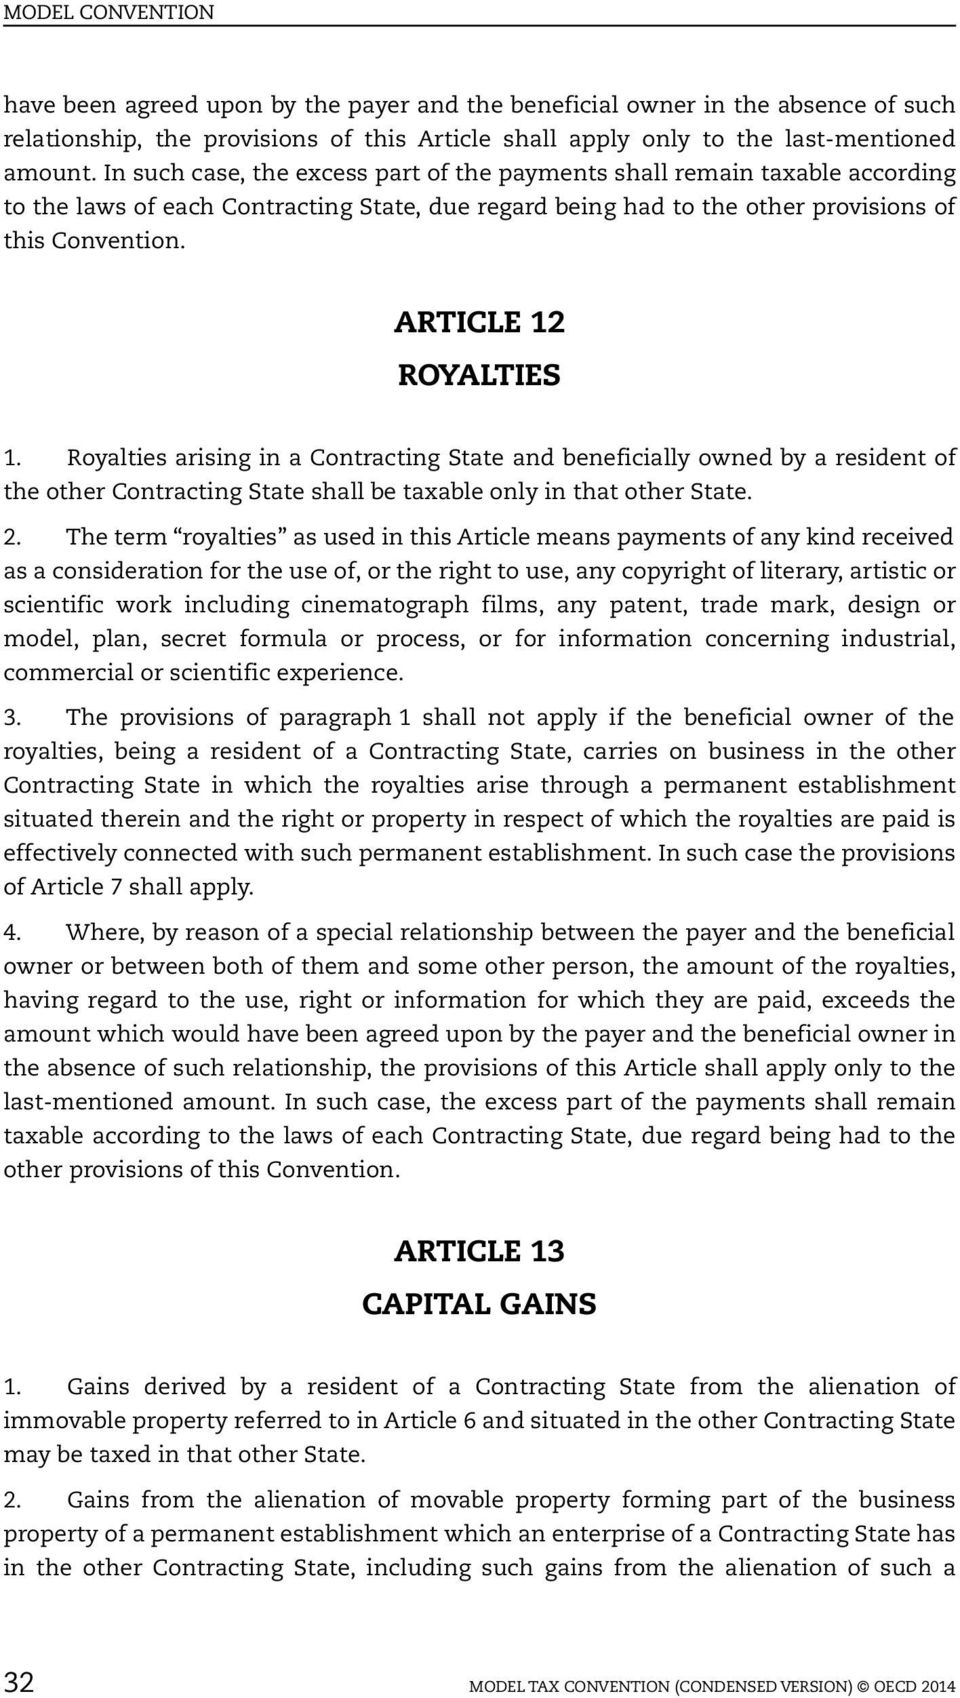 ARTICLE 12 ROYALTIES 1. Royalties arising in a Contracting State and beneficially owned by a resident of the other Contracting State shall be taxable only in that other State. 2.